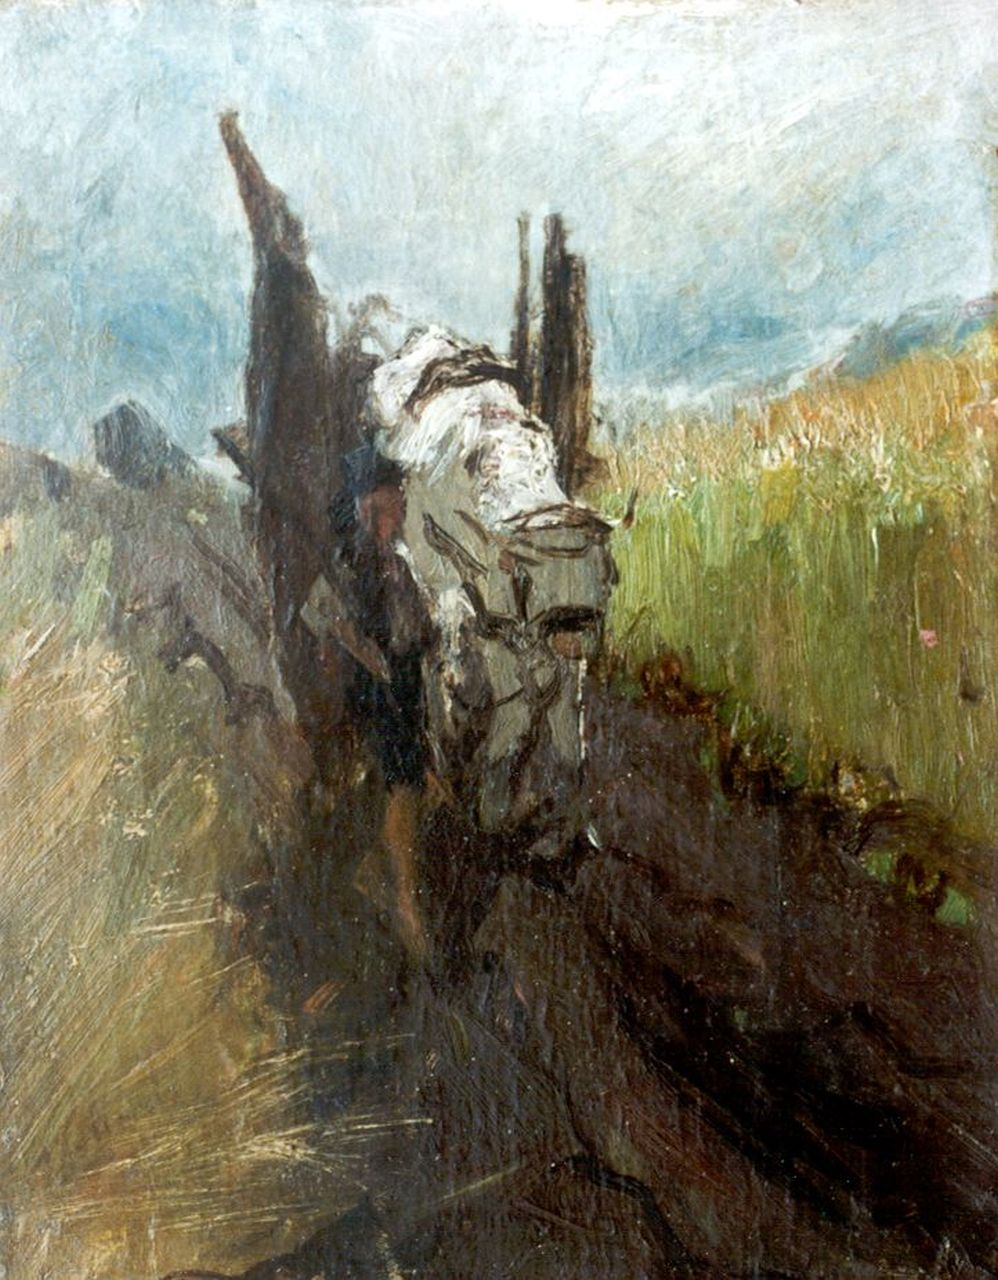 Maris W.  | Willem Maris, Farmer with cattle on a country road, oil on paper laid down on panel 22.1 x 17.2 cm, signed l.l.